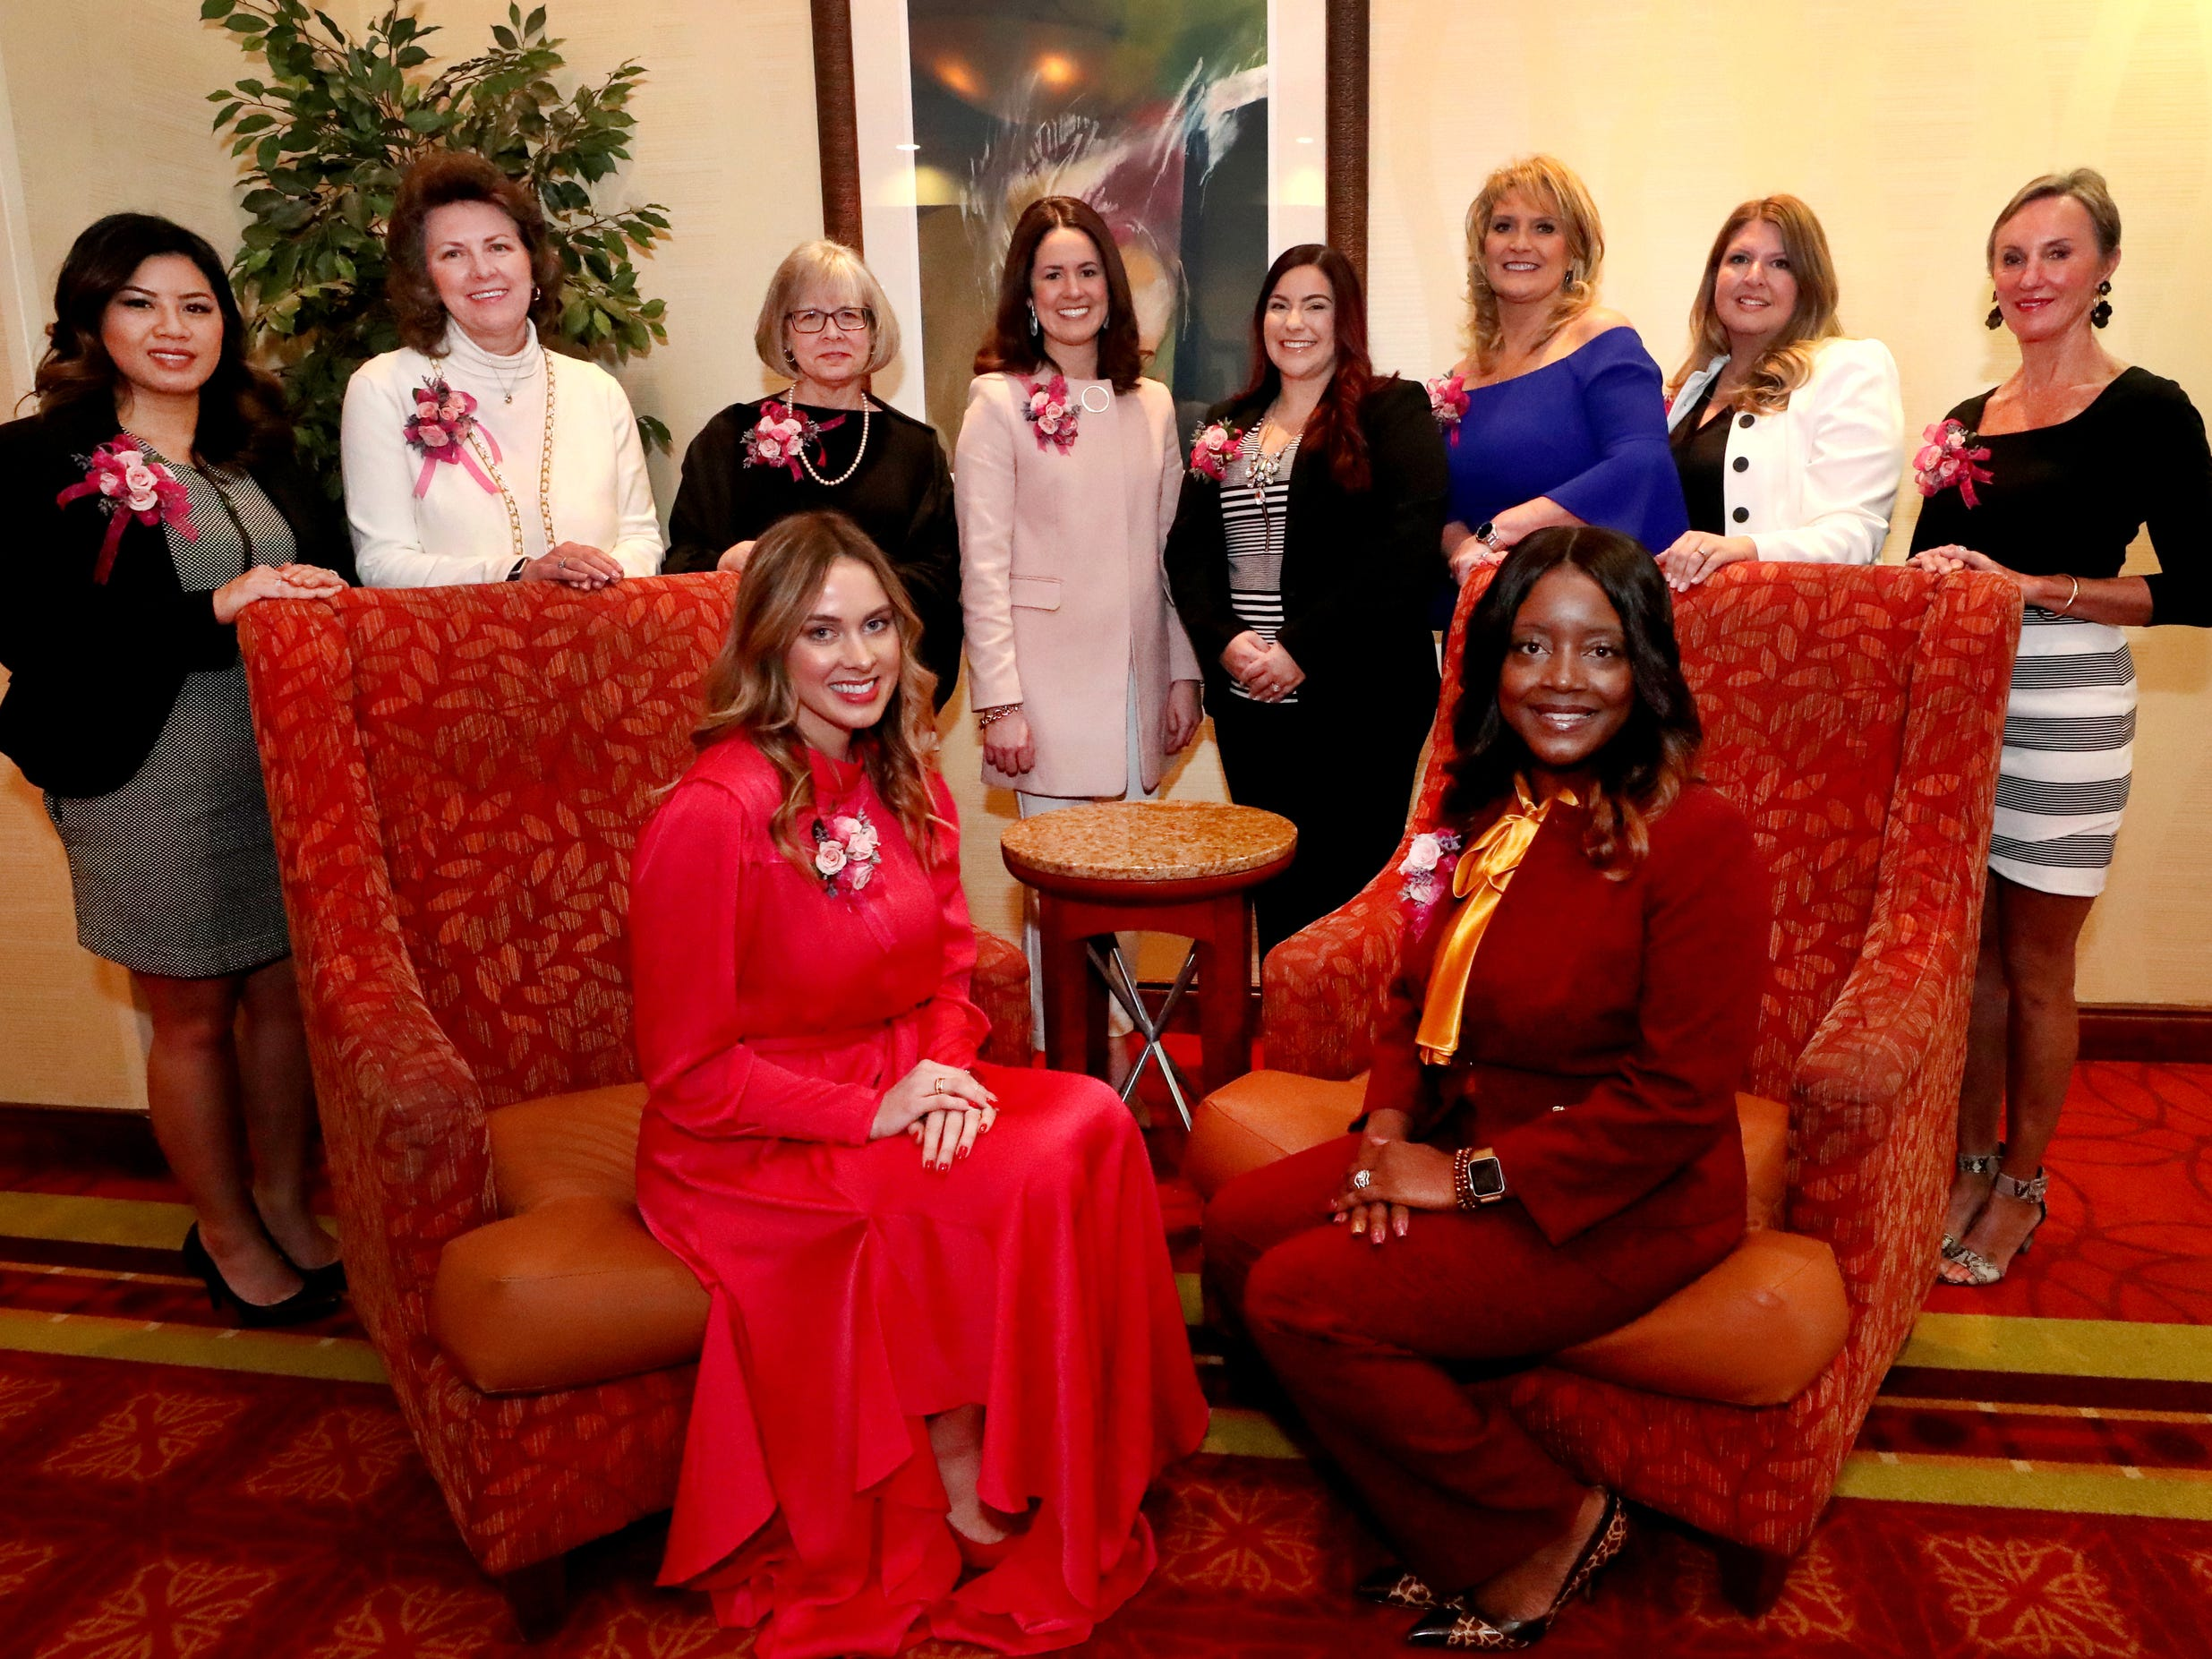 Ten women were recognized by Murfreesboro Magazine during the 2019 Women in Business Luncheon on Tuesday, March 12, 2019, at the Embassy Suites Murfreesboro. (L to R) Elizabeth Allen, owner of e.Allen boutiques, Novonda Lilly, Director of Talent Temp/Force and Executive Search at Vanderbilt University Medical Center. Back Row (L to R)Amy Jennings, owner of The Nail Room at Beehive Salon, Melissa Blair Wrigh, City Recorder, Treasure and Finance Director of the City of Murfreesboro ,Debra Sells, Vice President for Student Affairs and Vice Provost for Enrollment Services at MTSU, Megan Bynum, certified Financial Planner, Rebecca Goodwin, Co-owner and Office Manager of Goodwin Plumbing, Sheri Morgan, owner of Tri Star Title and Escrow, Ladawna Parham, Executive Director at Nourish Food Bank and Dr. Elizabeth Laroche, M.D. at Mid-TN-GYN and Owner of Body and Face